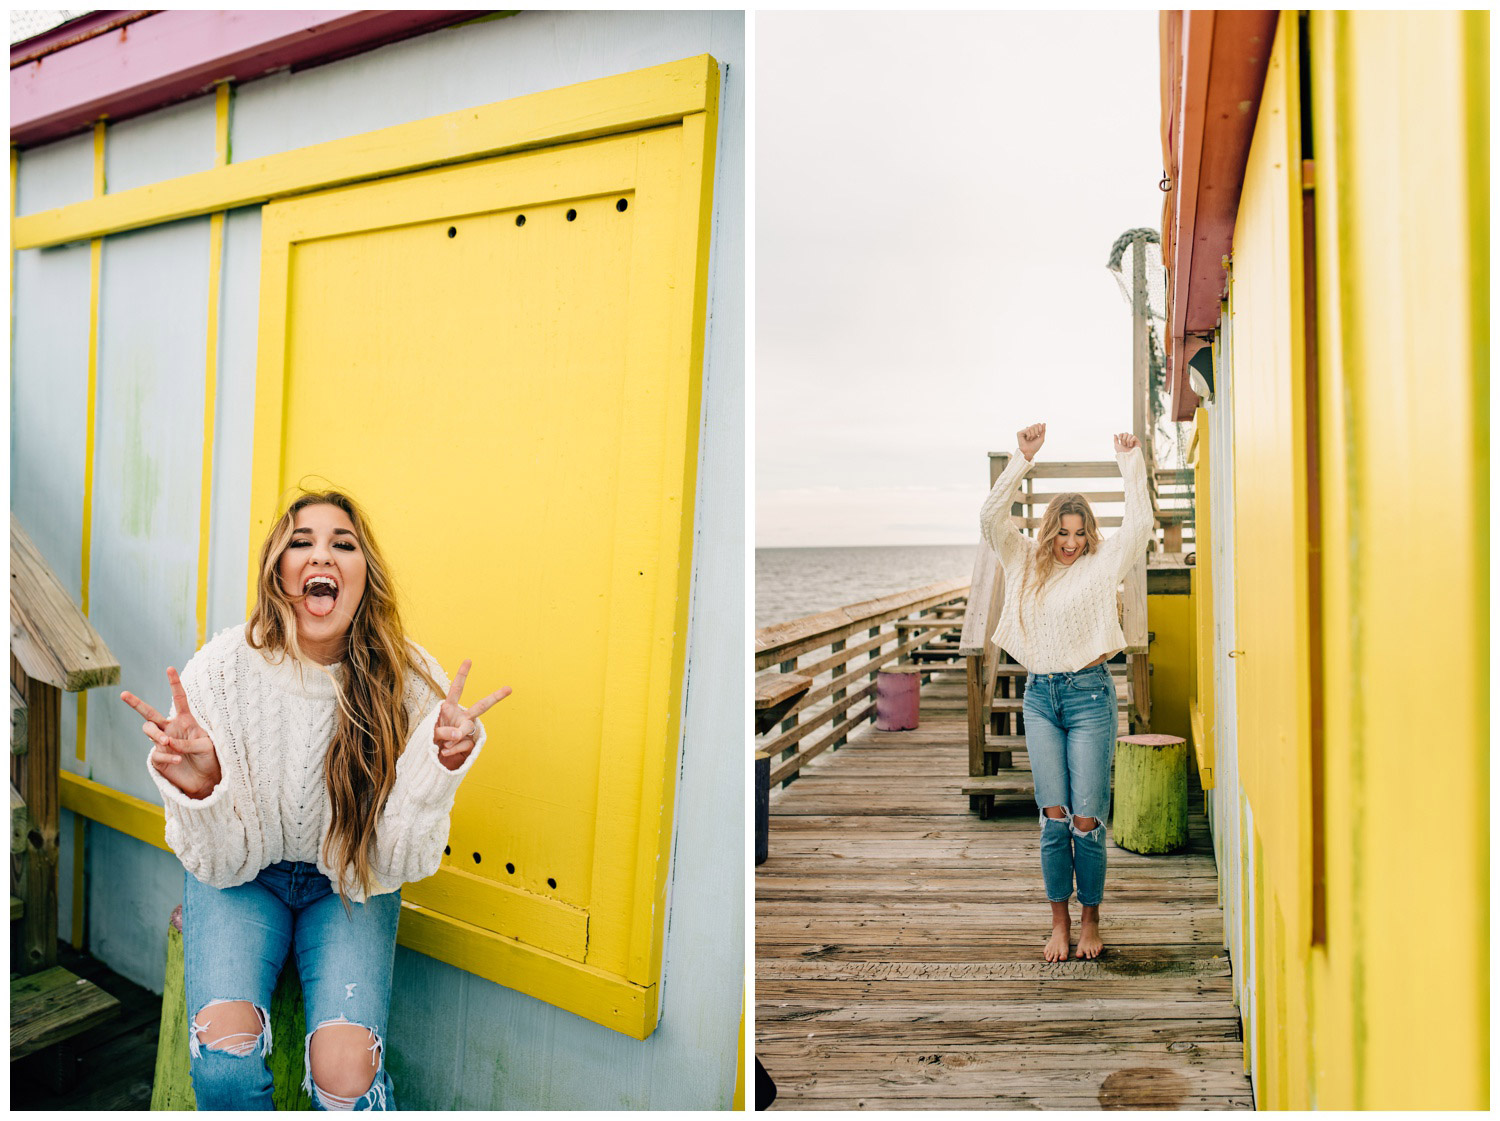 girl acting silly in front of yellow wall